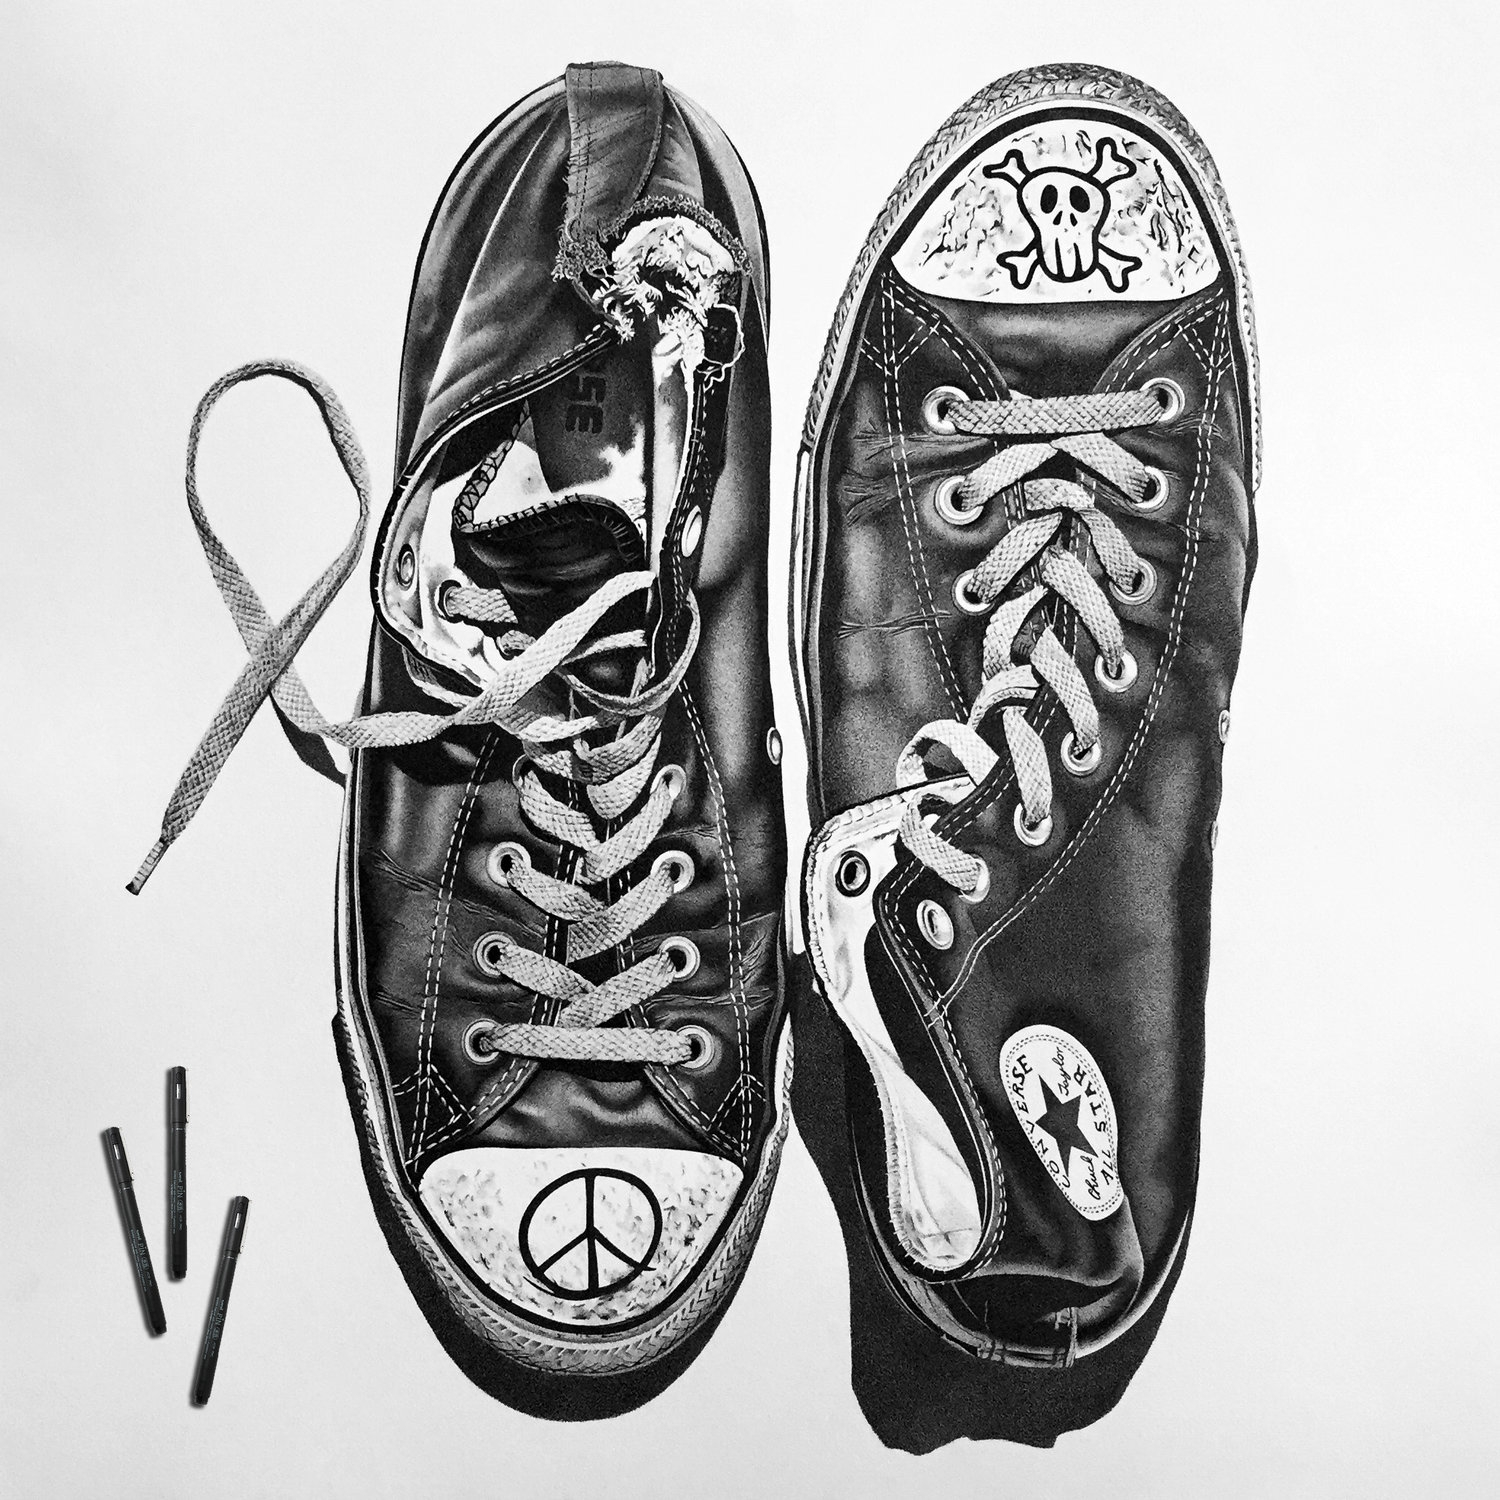 14-Converse-Sneakers-Alessandro-Paglia-Photo-Like-Black-and-White-Drawings-www-designstack-co